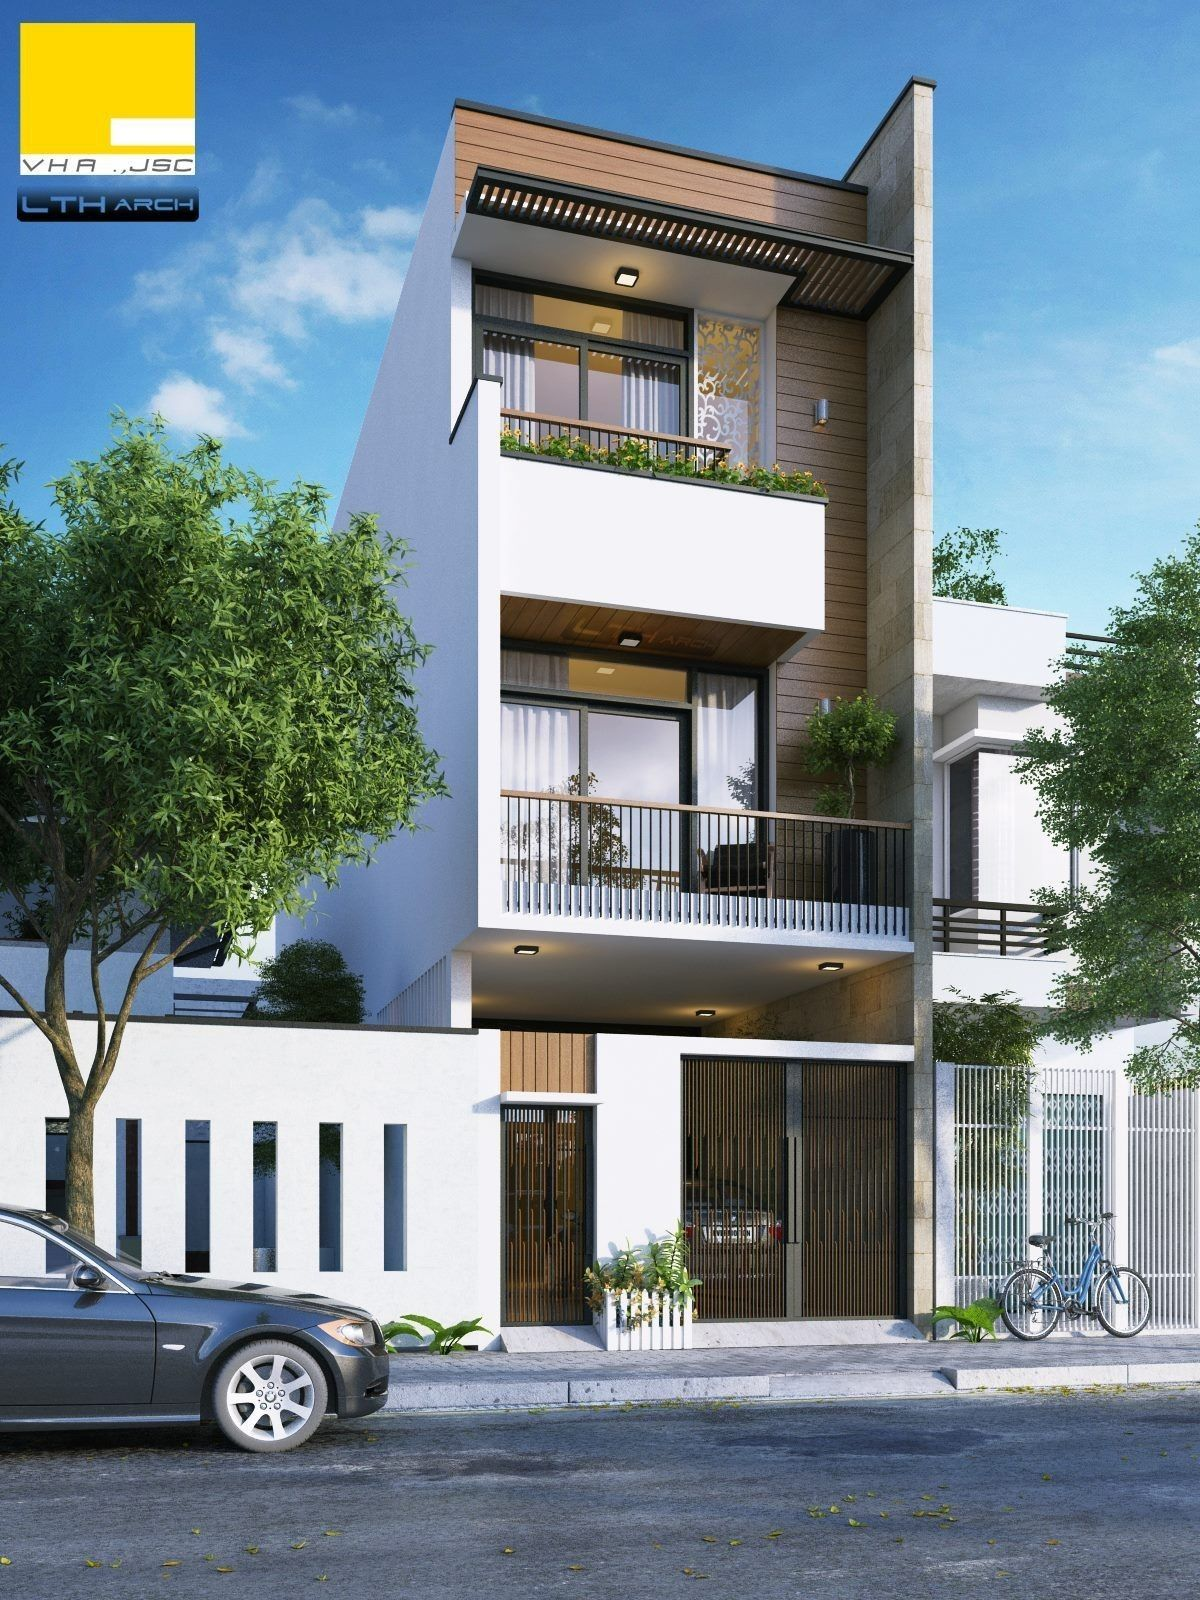 Pin by Pilu Sitapara on Exterior A (With images) | 3 ...